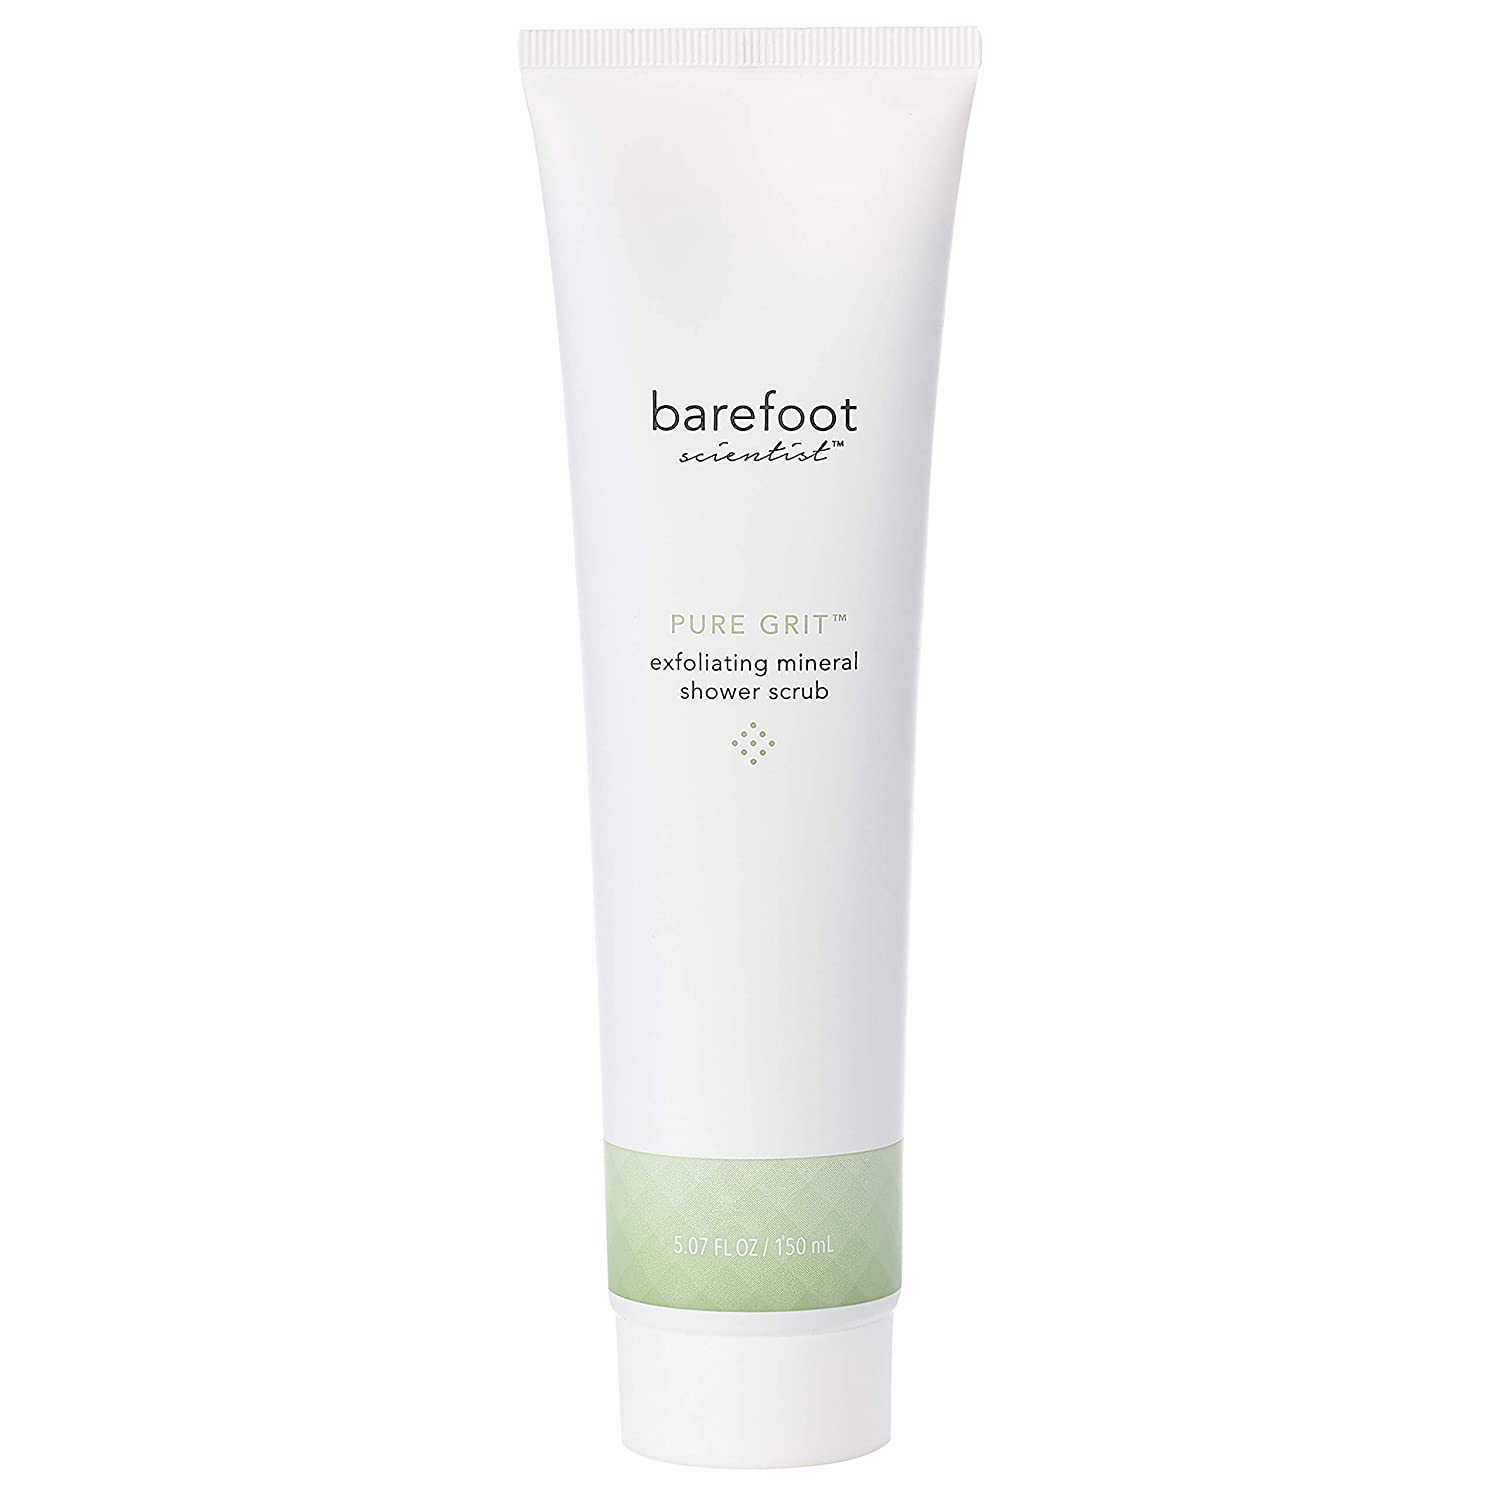 Barefoot Scientist Pure Grit Exfoliating Mineral Scrub, Foot and Body Scrub with Eucalyptus Scent